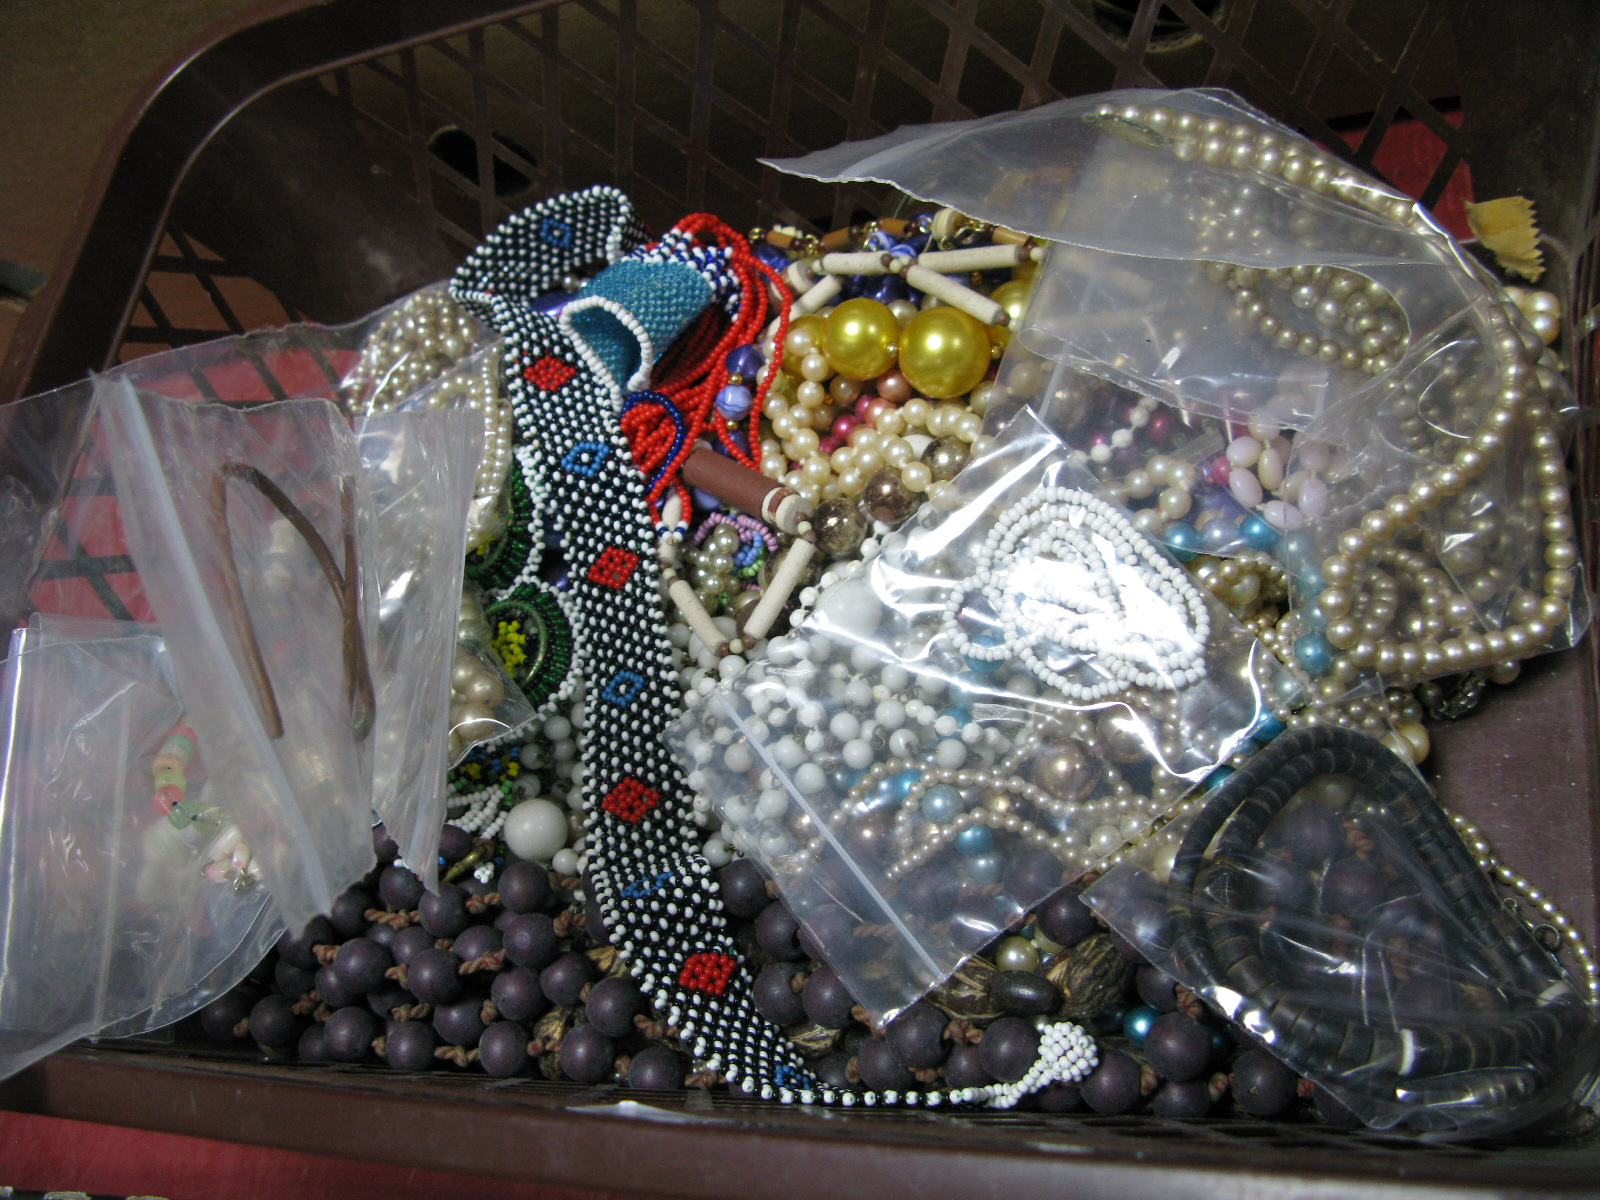 Lot 1051 - A Mixed Lot of Assorted Bead Necklace, including imitation pearls, etc.